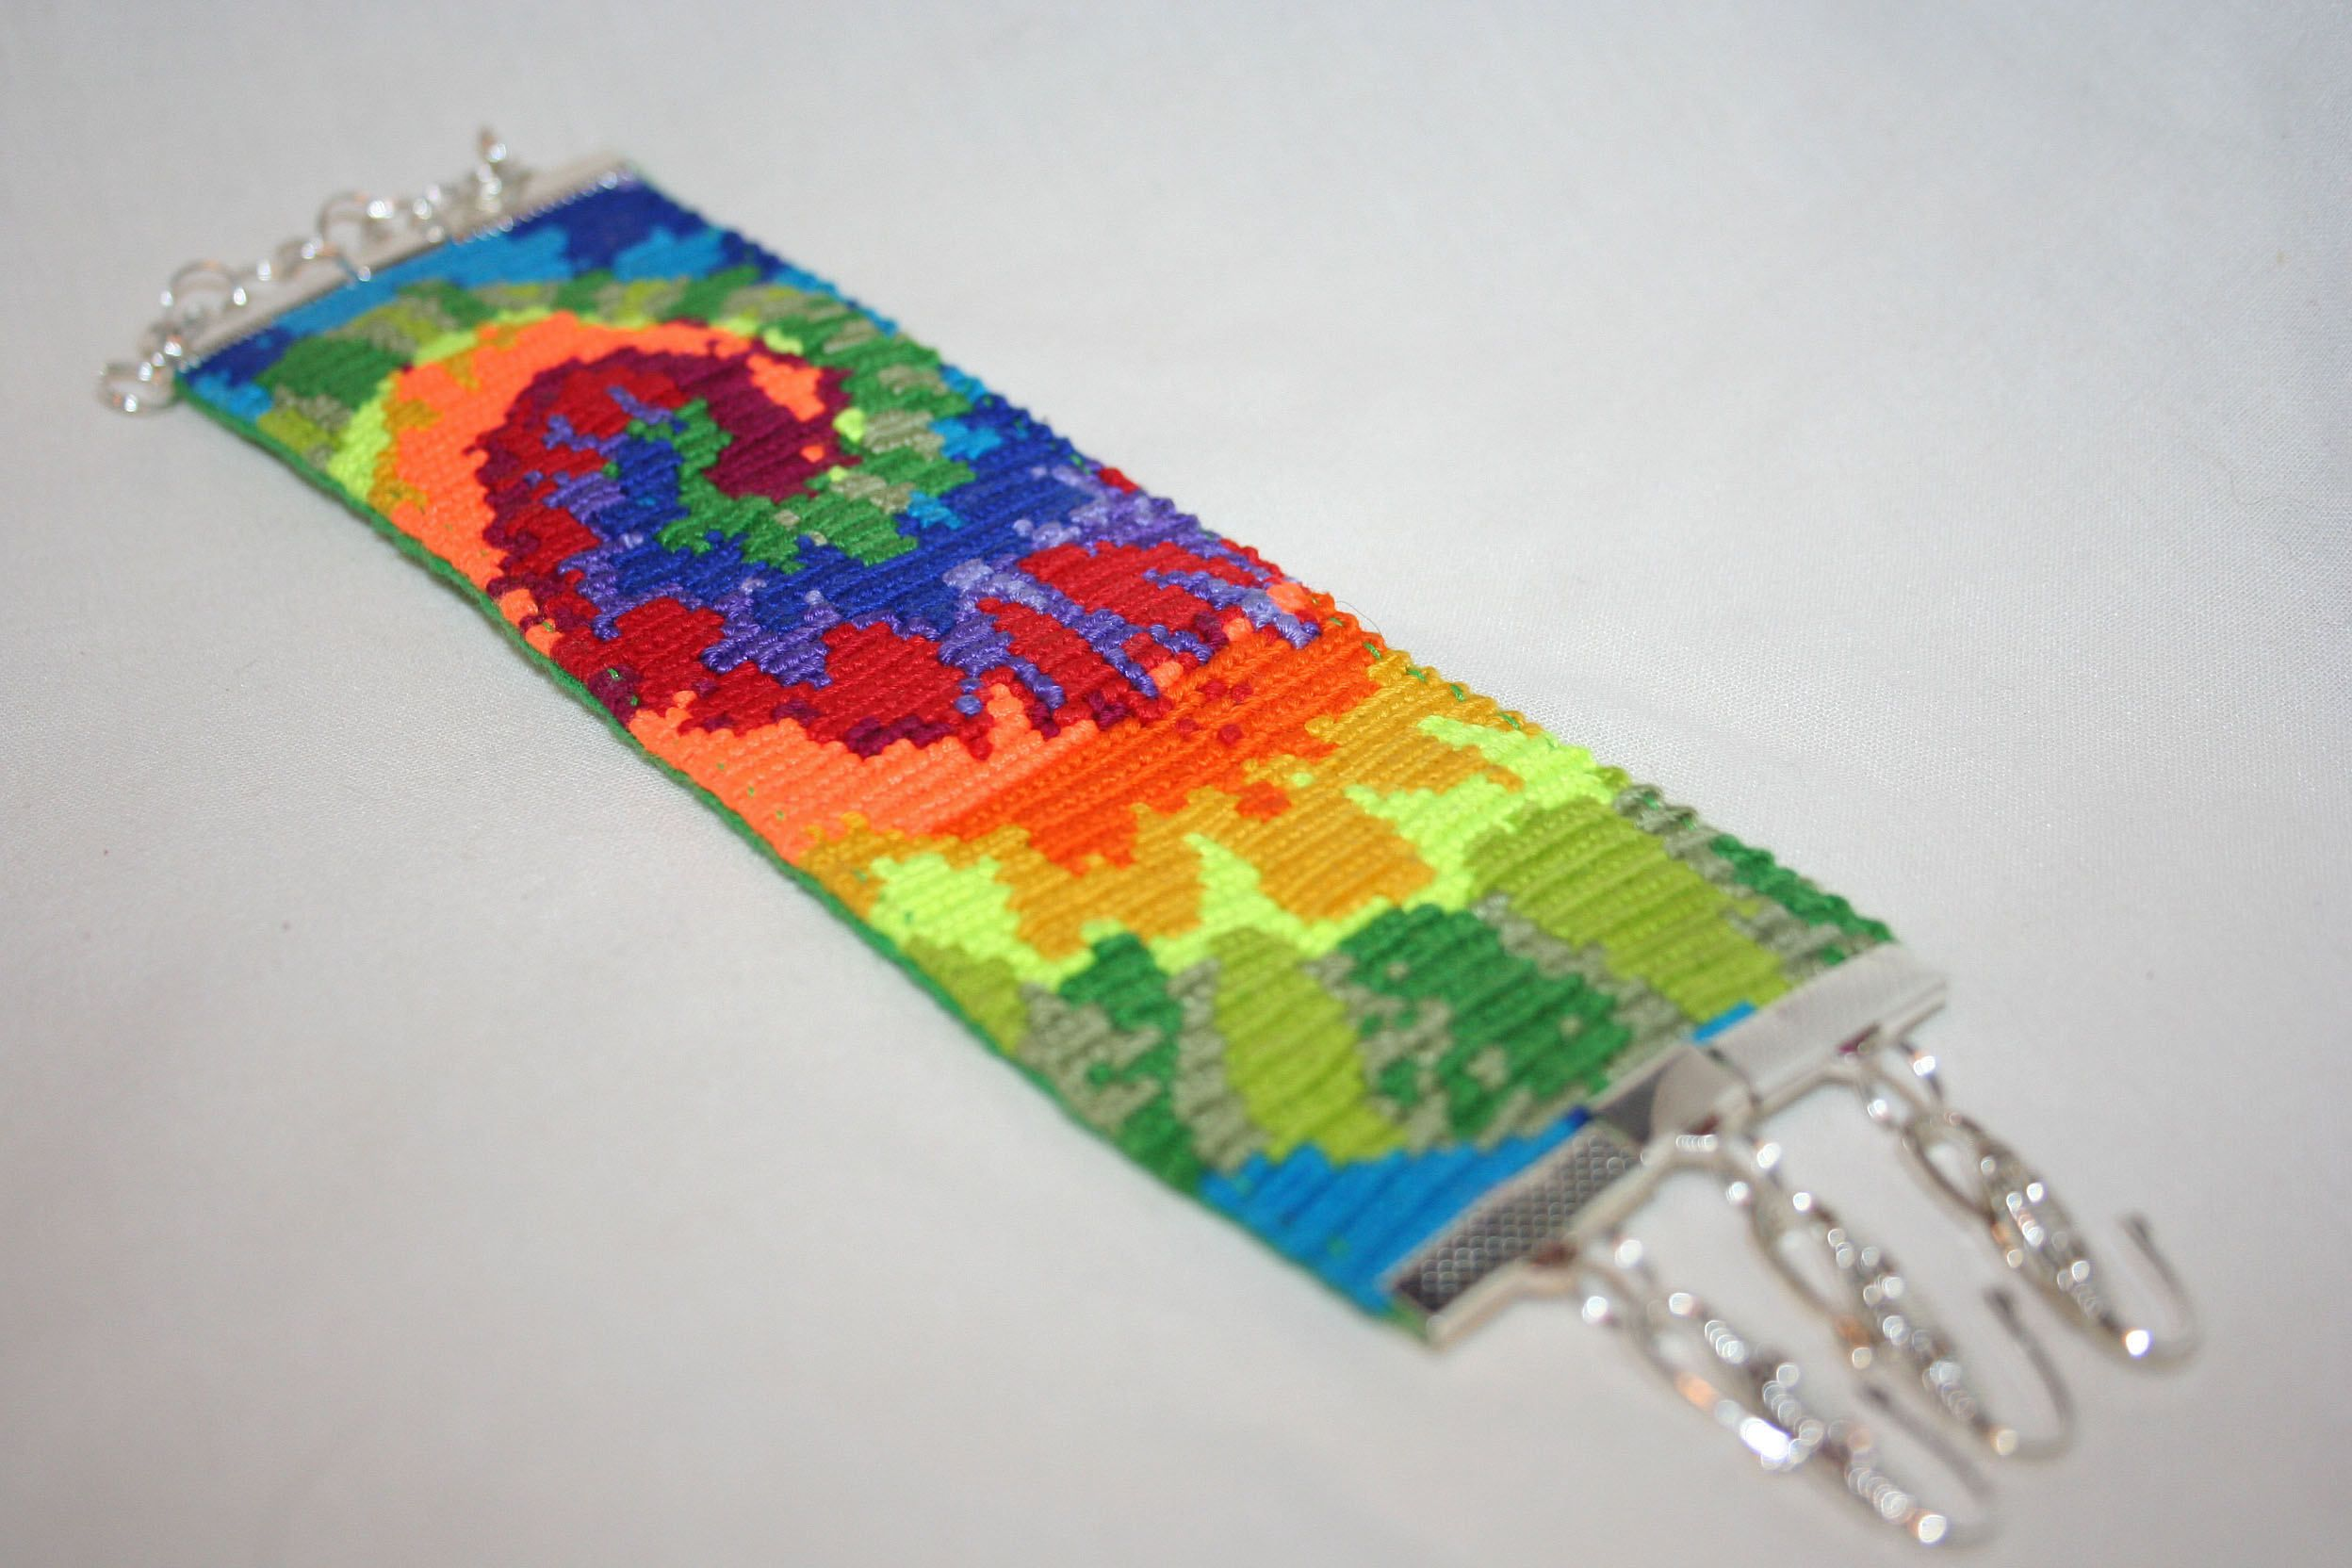 bracelet hands breeze cool img tie dye helping store